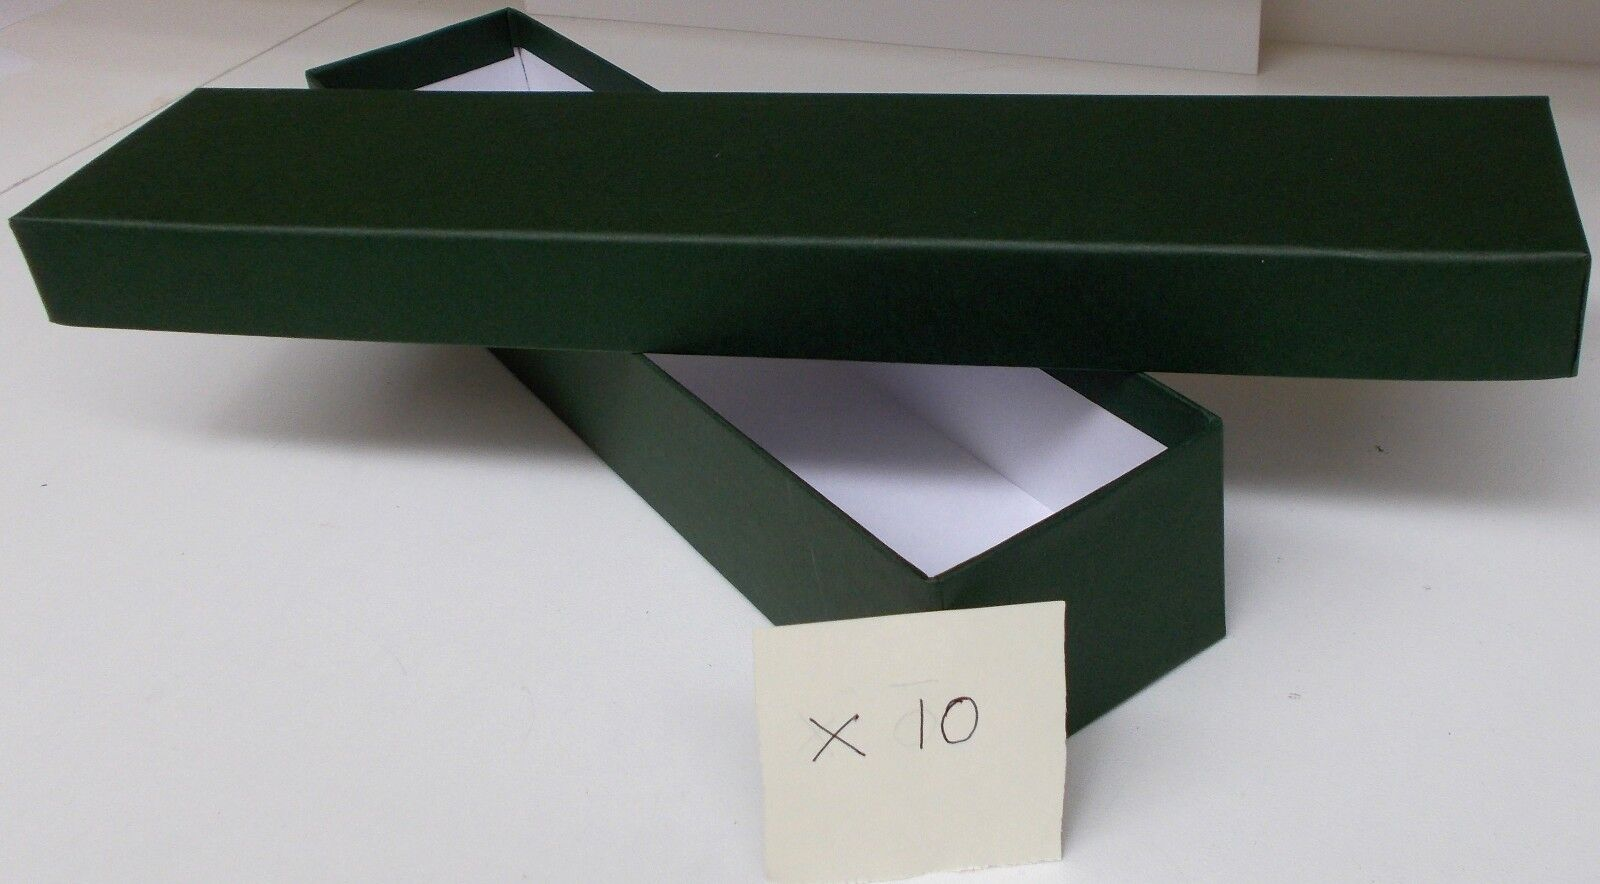 Loco Locomotive Storage Boxes, Large (Green) with Lids x 10 - New.